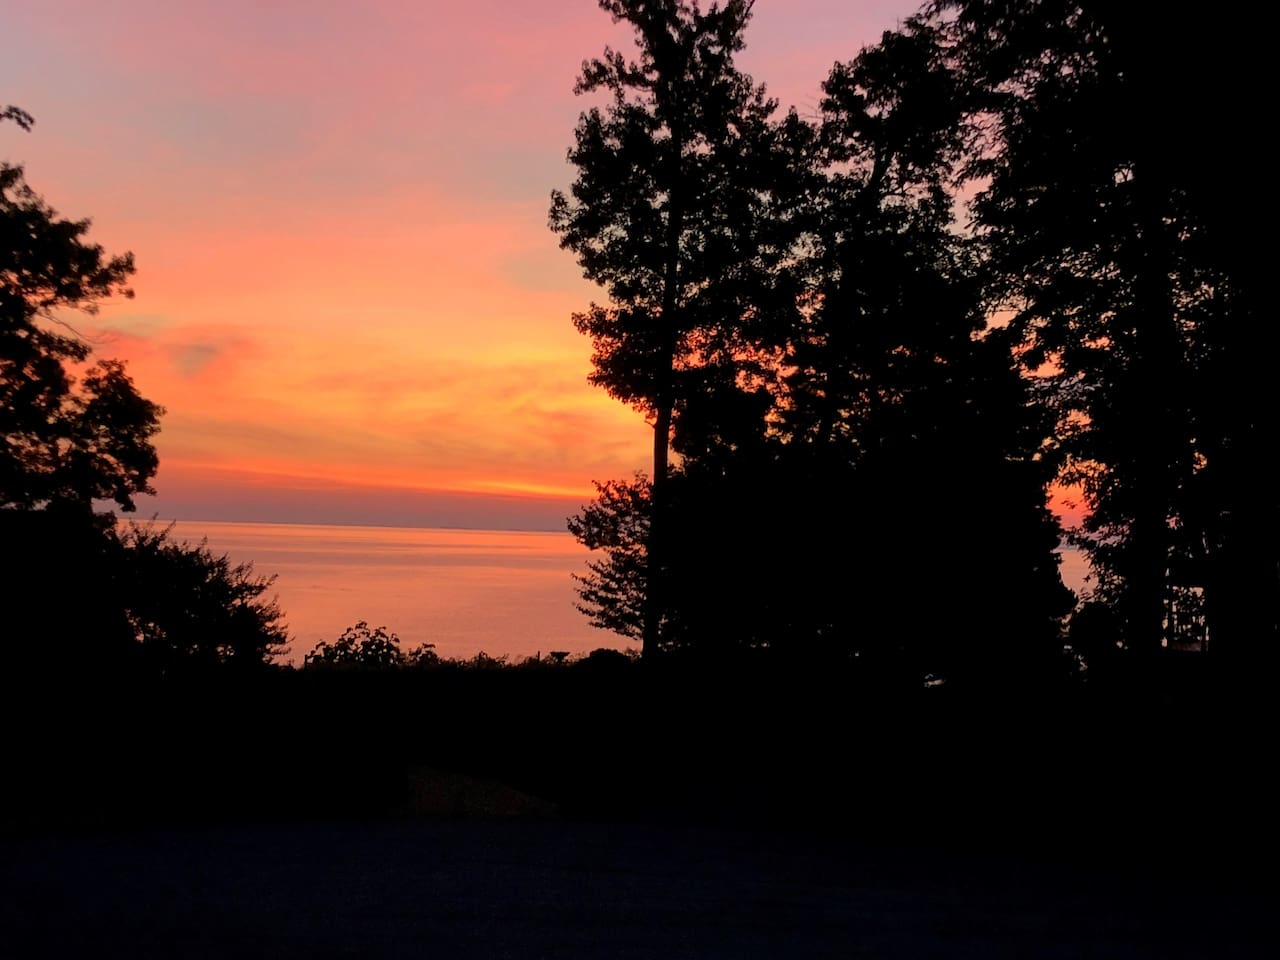 Sunrise over the Chesapeake Bay from the porch at Bayview at Hilltop